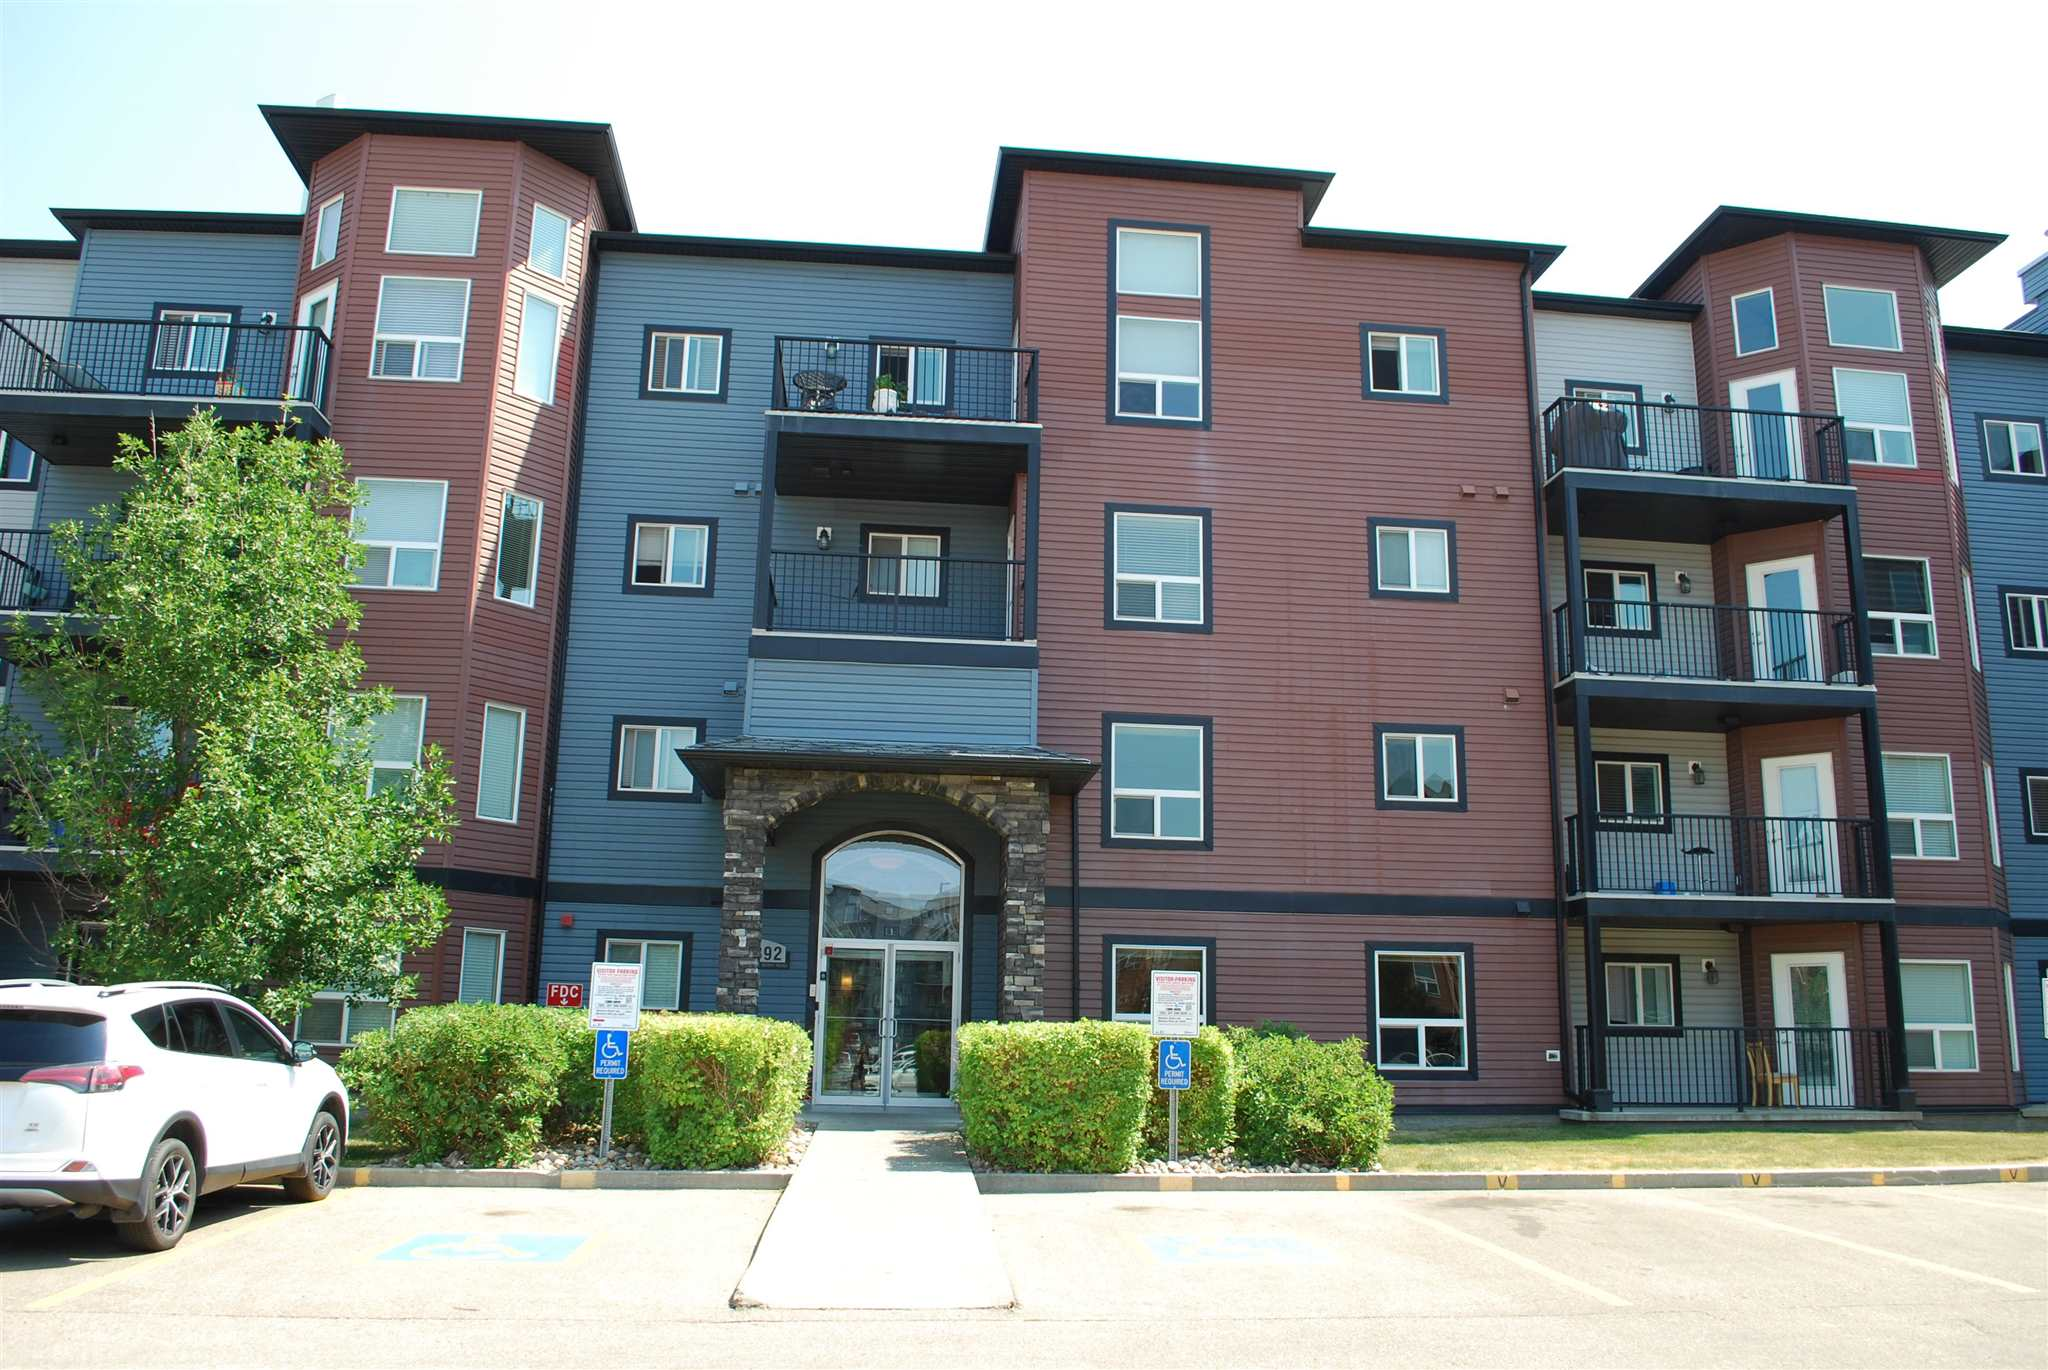 One Bedroom unit located on the top floor of Village on the Park complex with low condo fees.  Features included open plan with an kitchen, LR & DR, bedroom has a walk in closet, in-suite laundry area and heated underground parking stall.  Building has exercise room, lounge and car wash bay.  Easy access to all amenities, public transit and Anthony Henday.